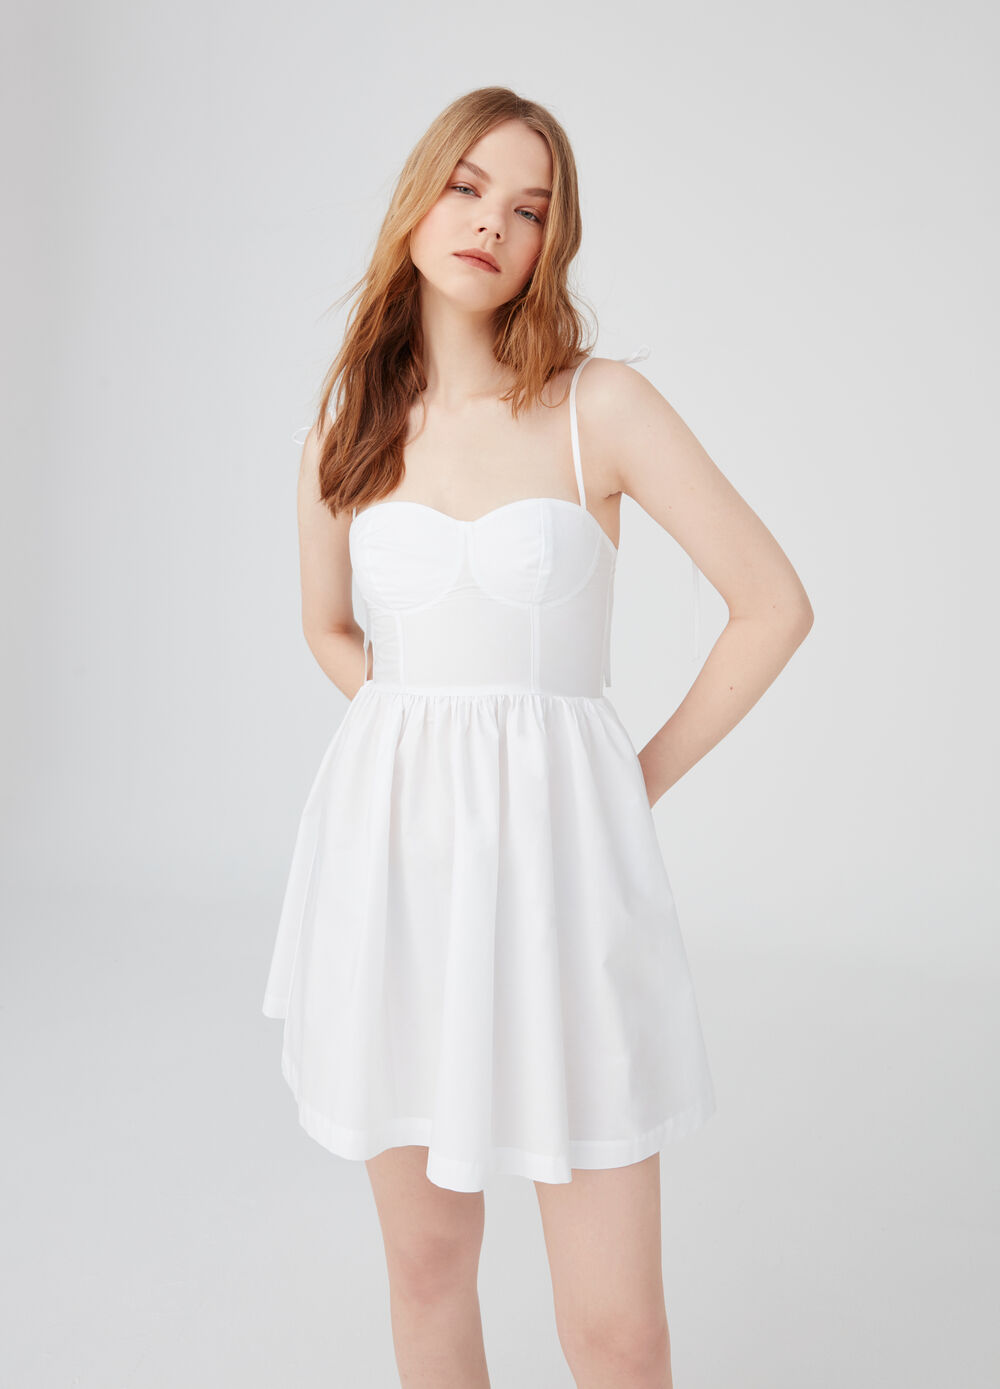 Dress with sweetheart neckline and pleated skirt